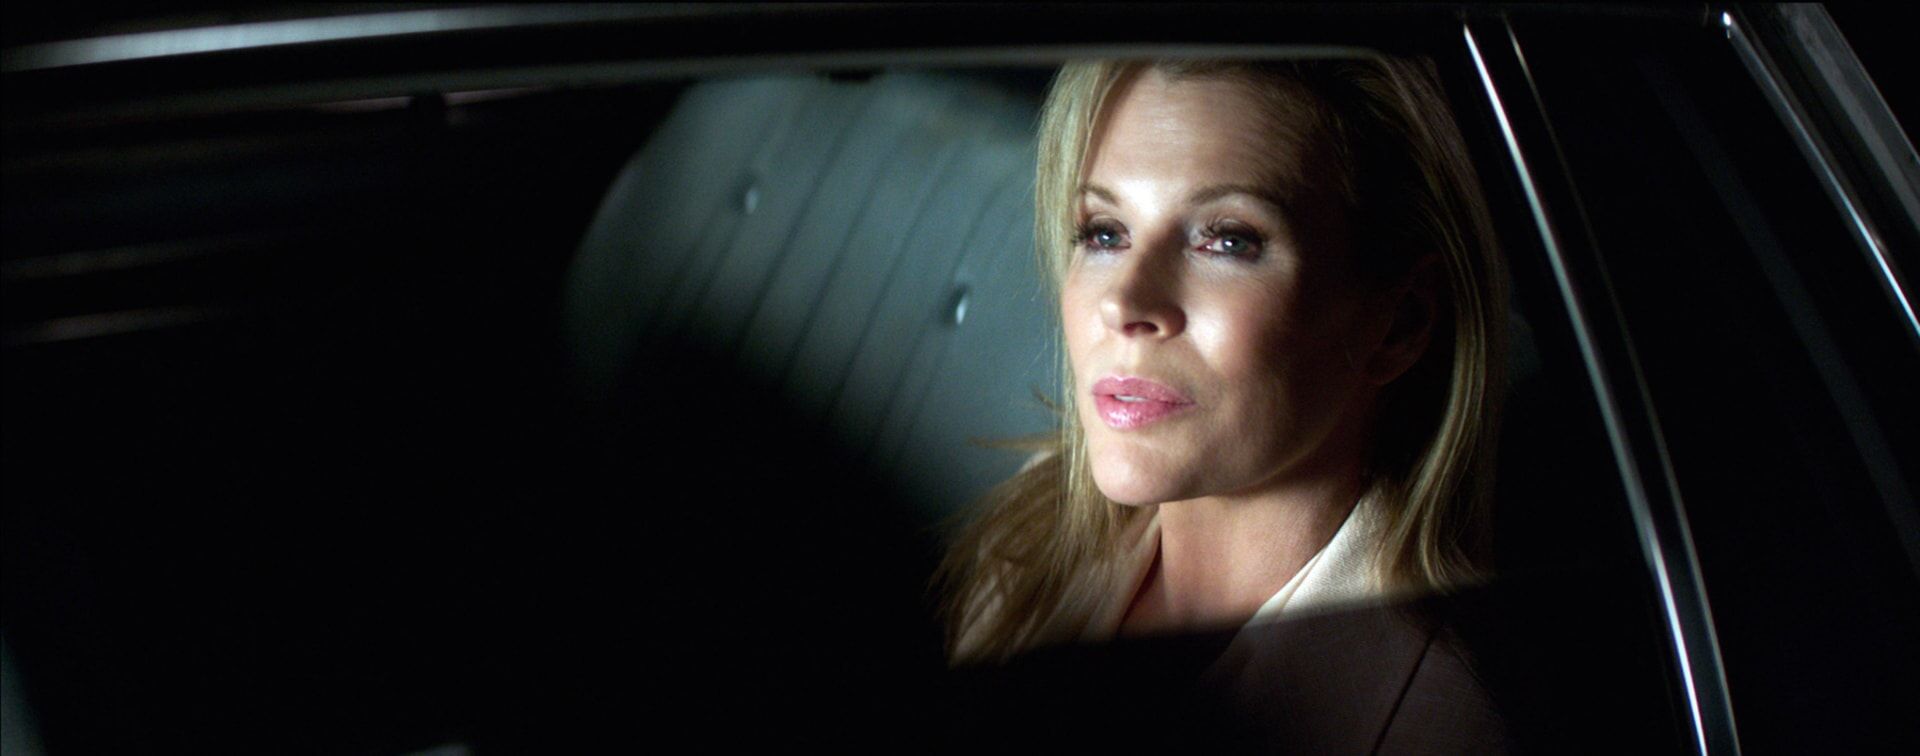 KIM BASINGER as Judith Kuttner looking out the window of a vehicle